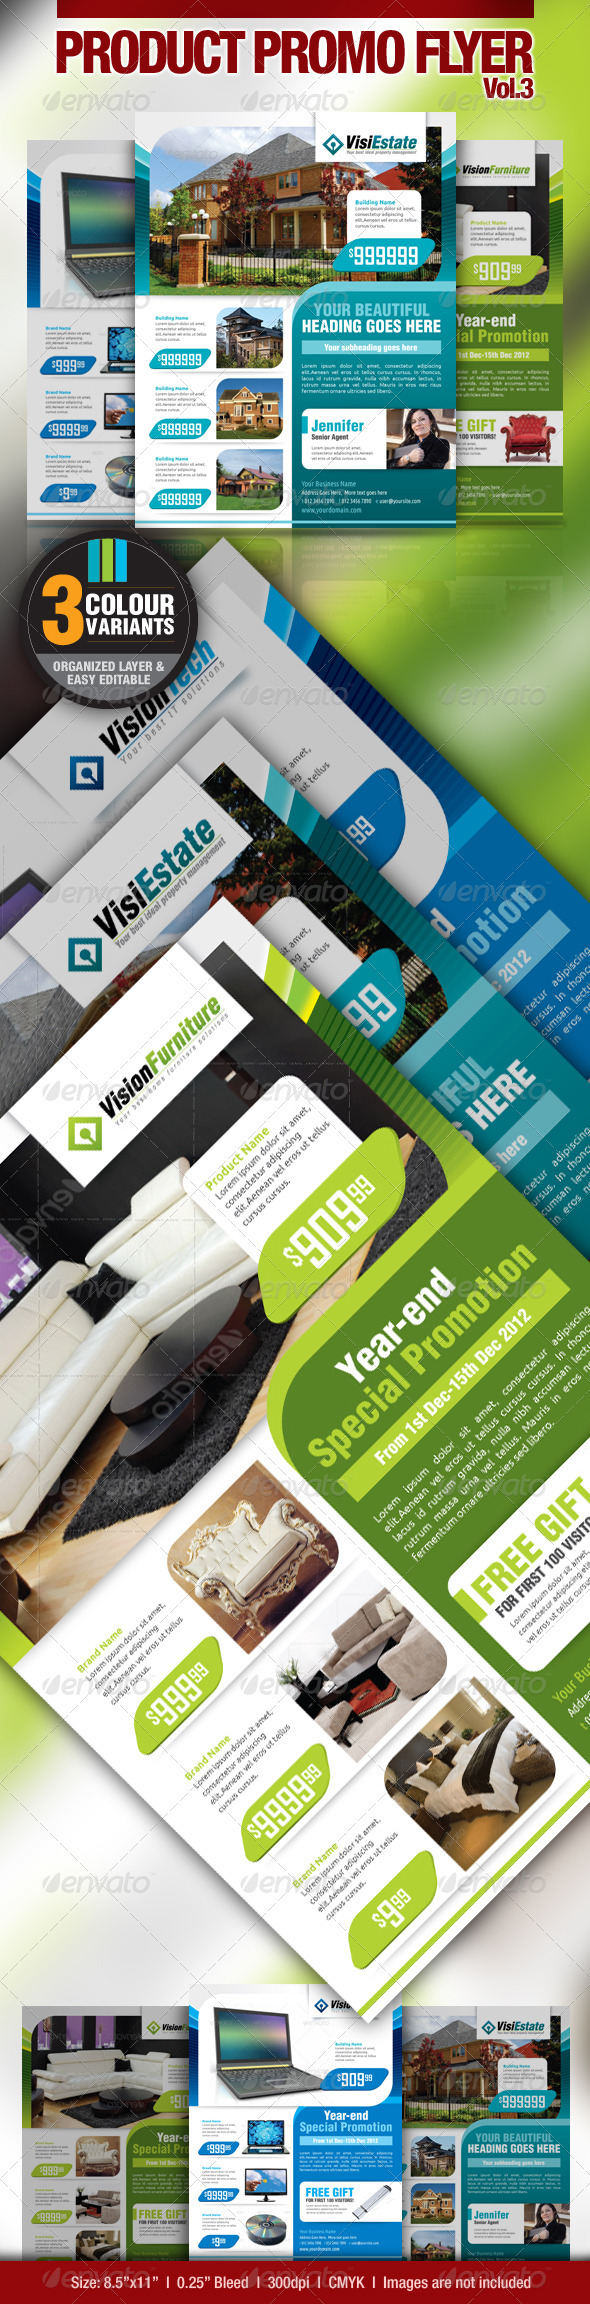 GraphicRiver Multi-Purpose Product Promotion Flyer Vol.3 2603178